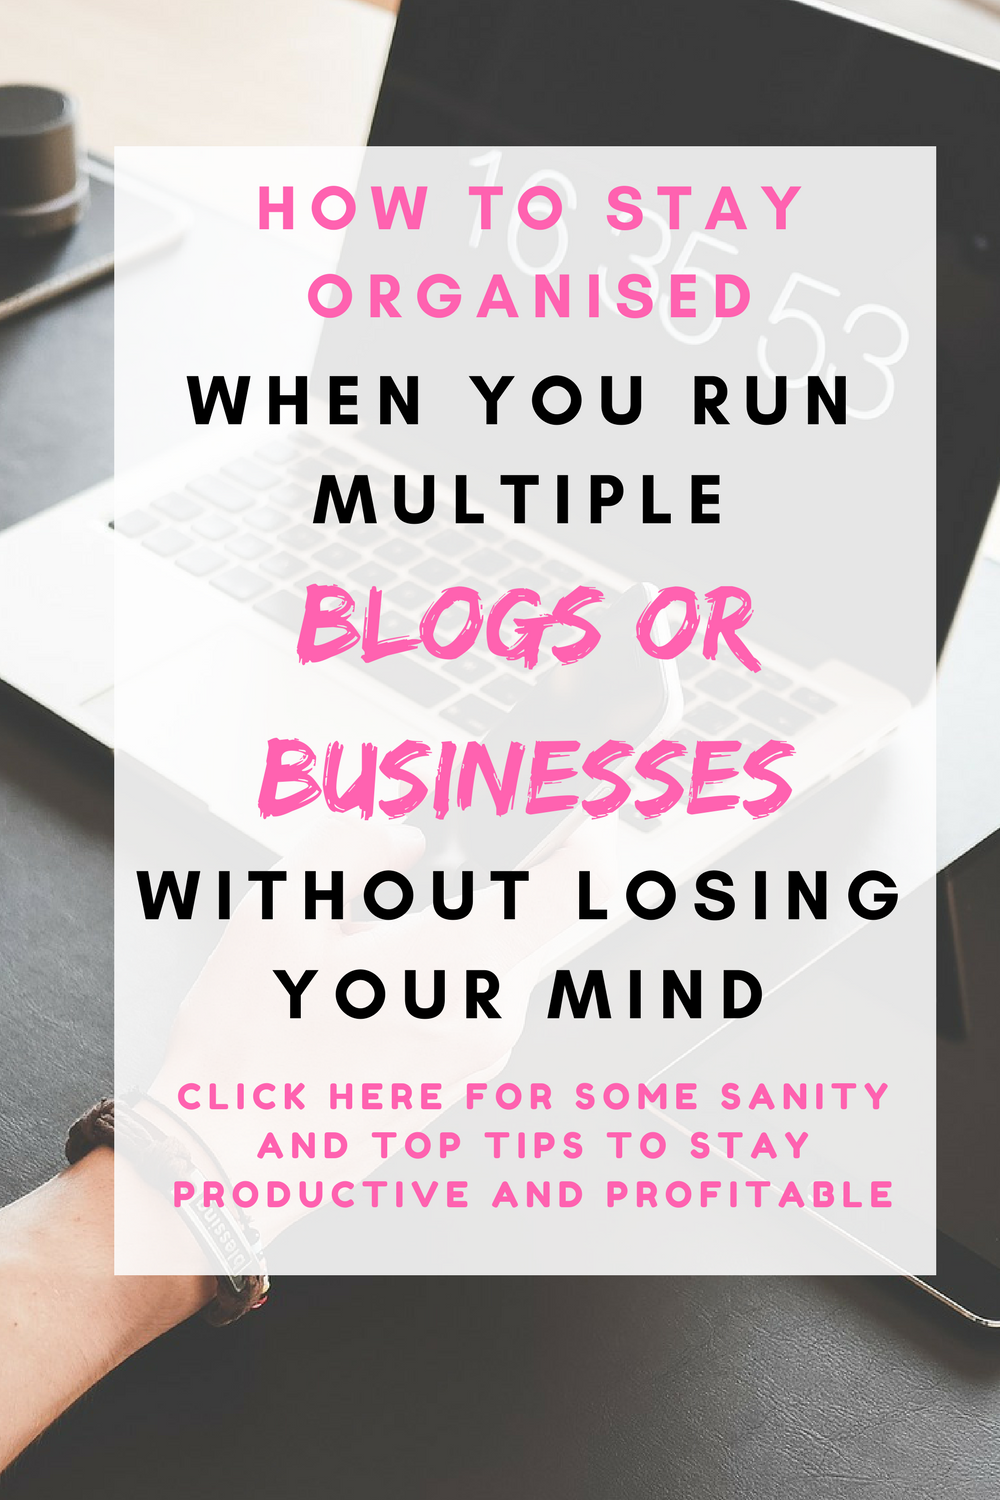 How to stay organised when you run multiple businesses or blogs without losing your mind. Click here for some sanity and top tips to stay productive and profitable